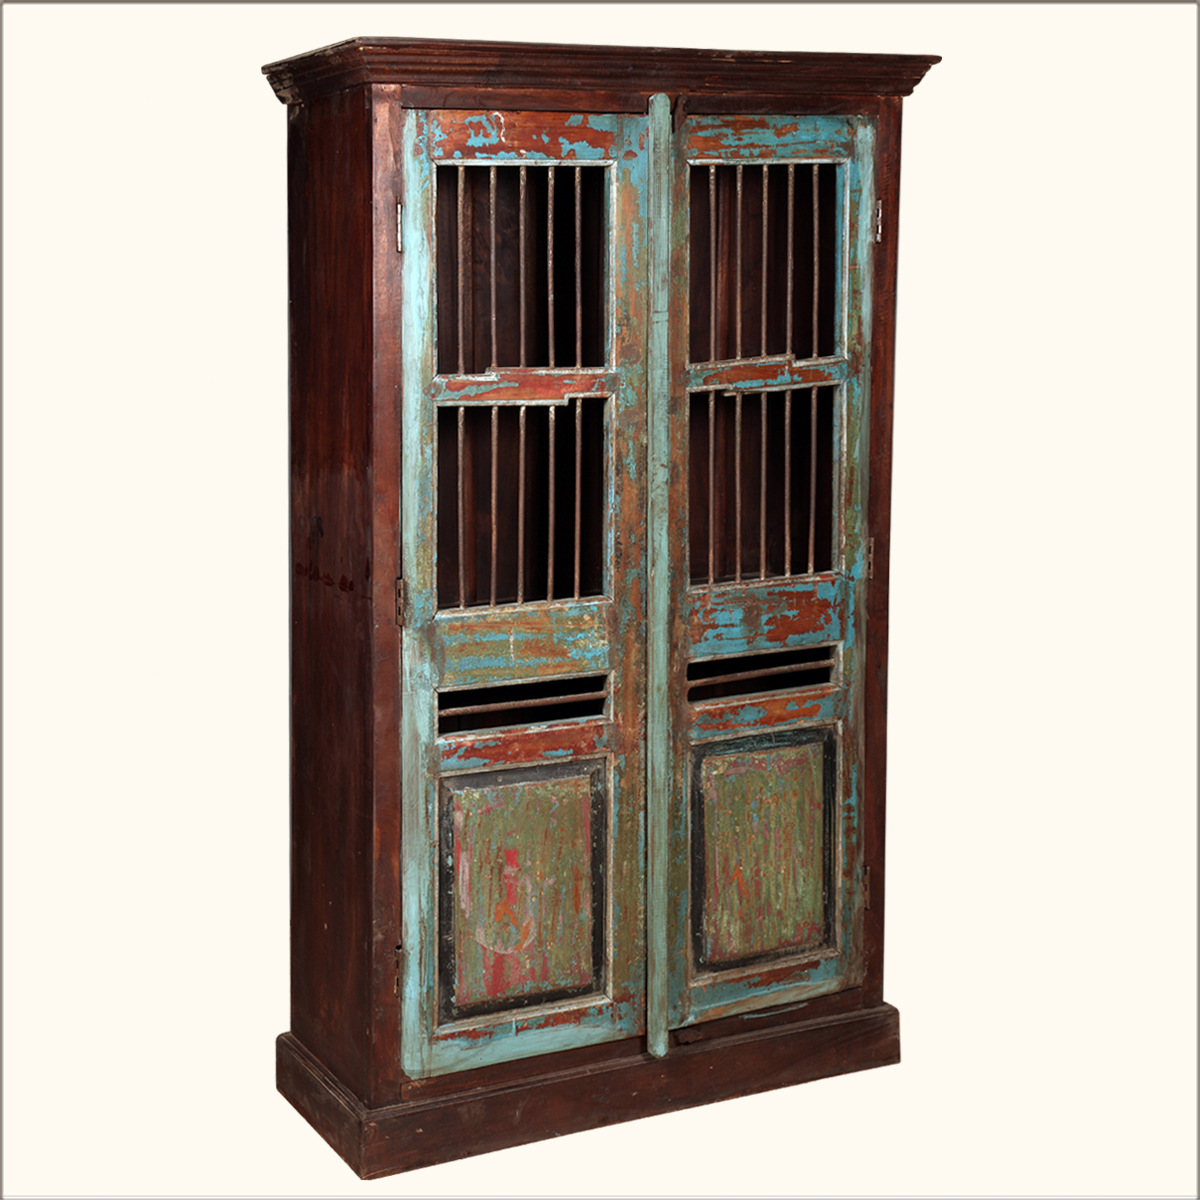 Marvelous photograph of  Wood 73 Storage Clothing Wardrobe Cabinet Armoire Furniture eBay with #B48317 color and 1200x1200 pixels